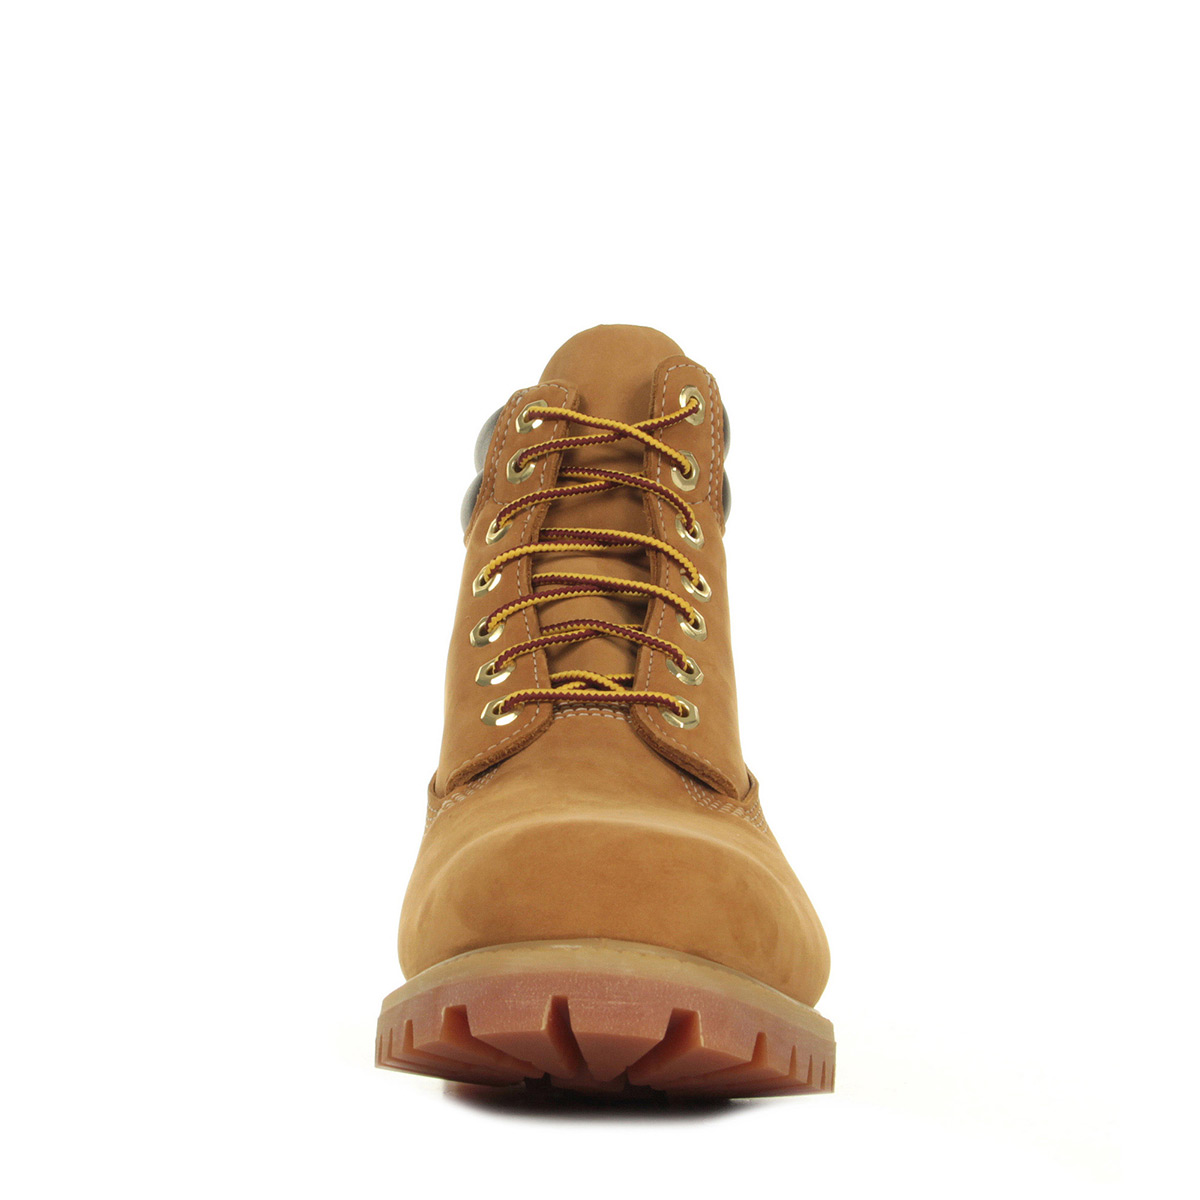 Timberland 6 In Boot C73540, Boots homme